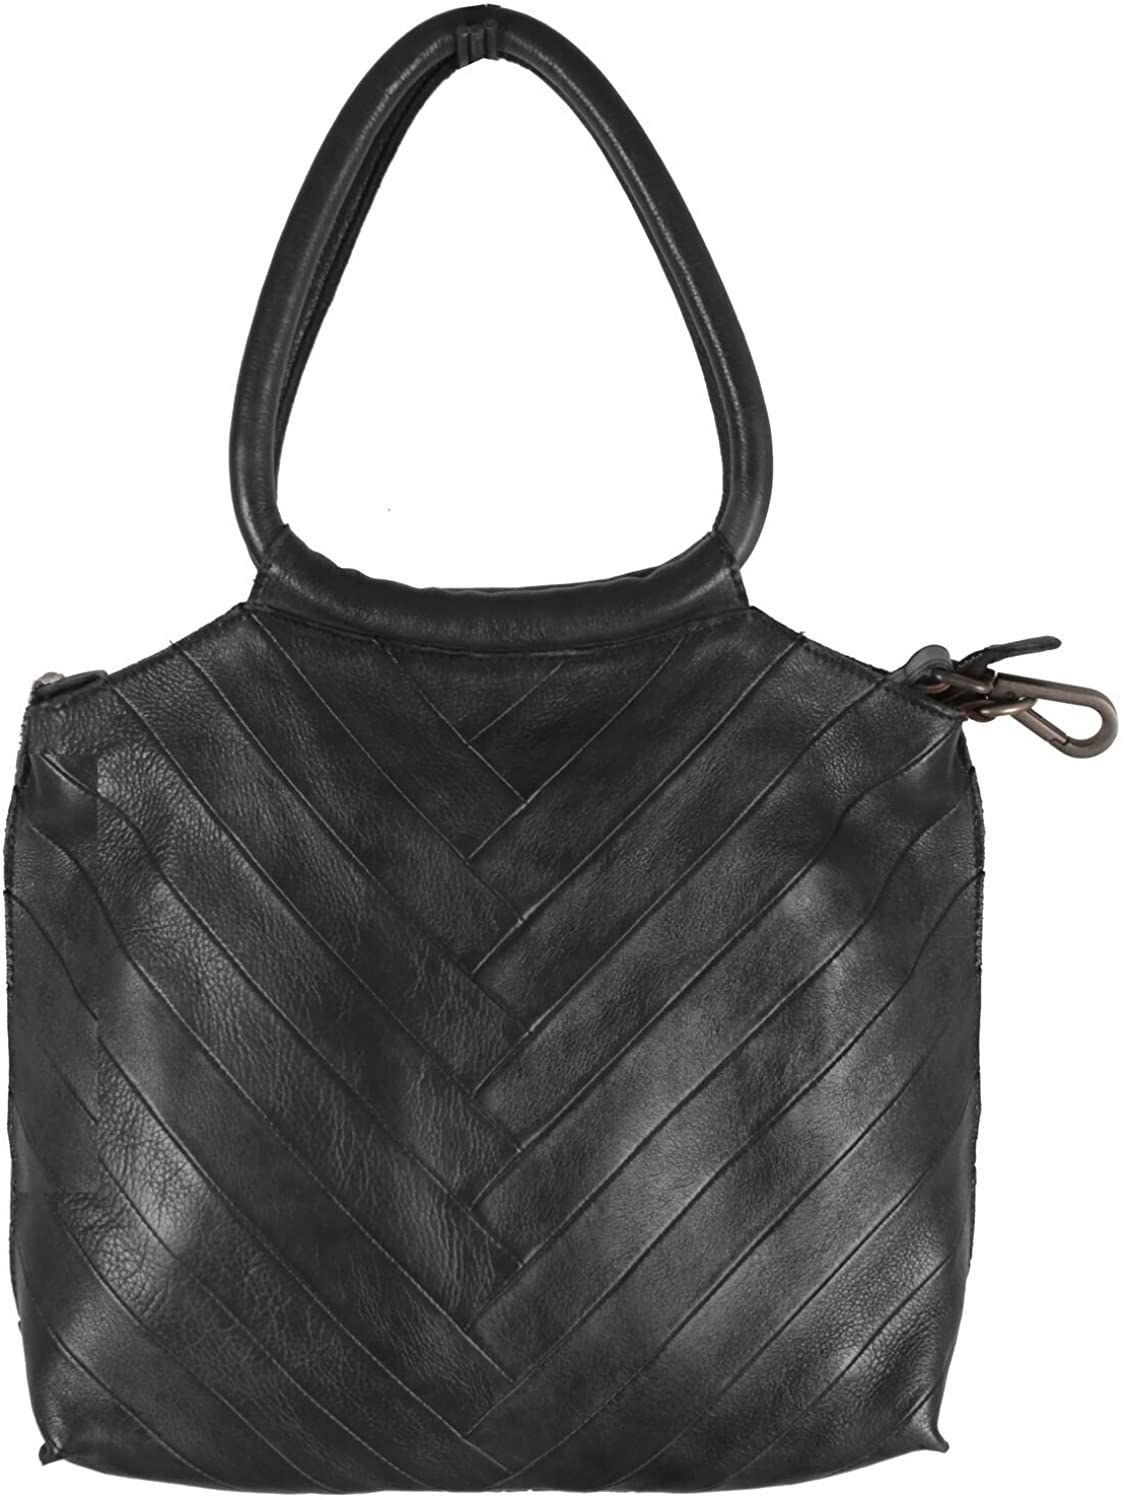 the black bag with two carry handles